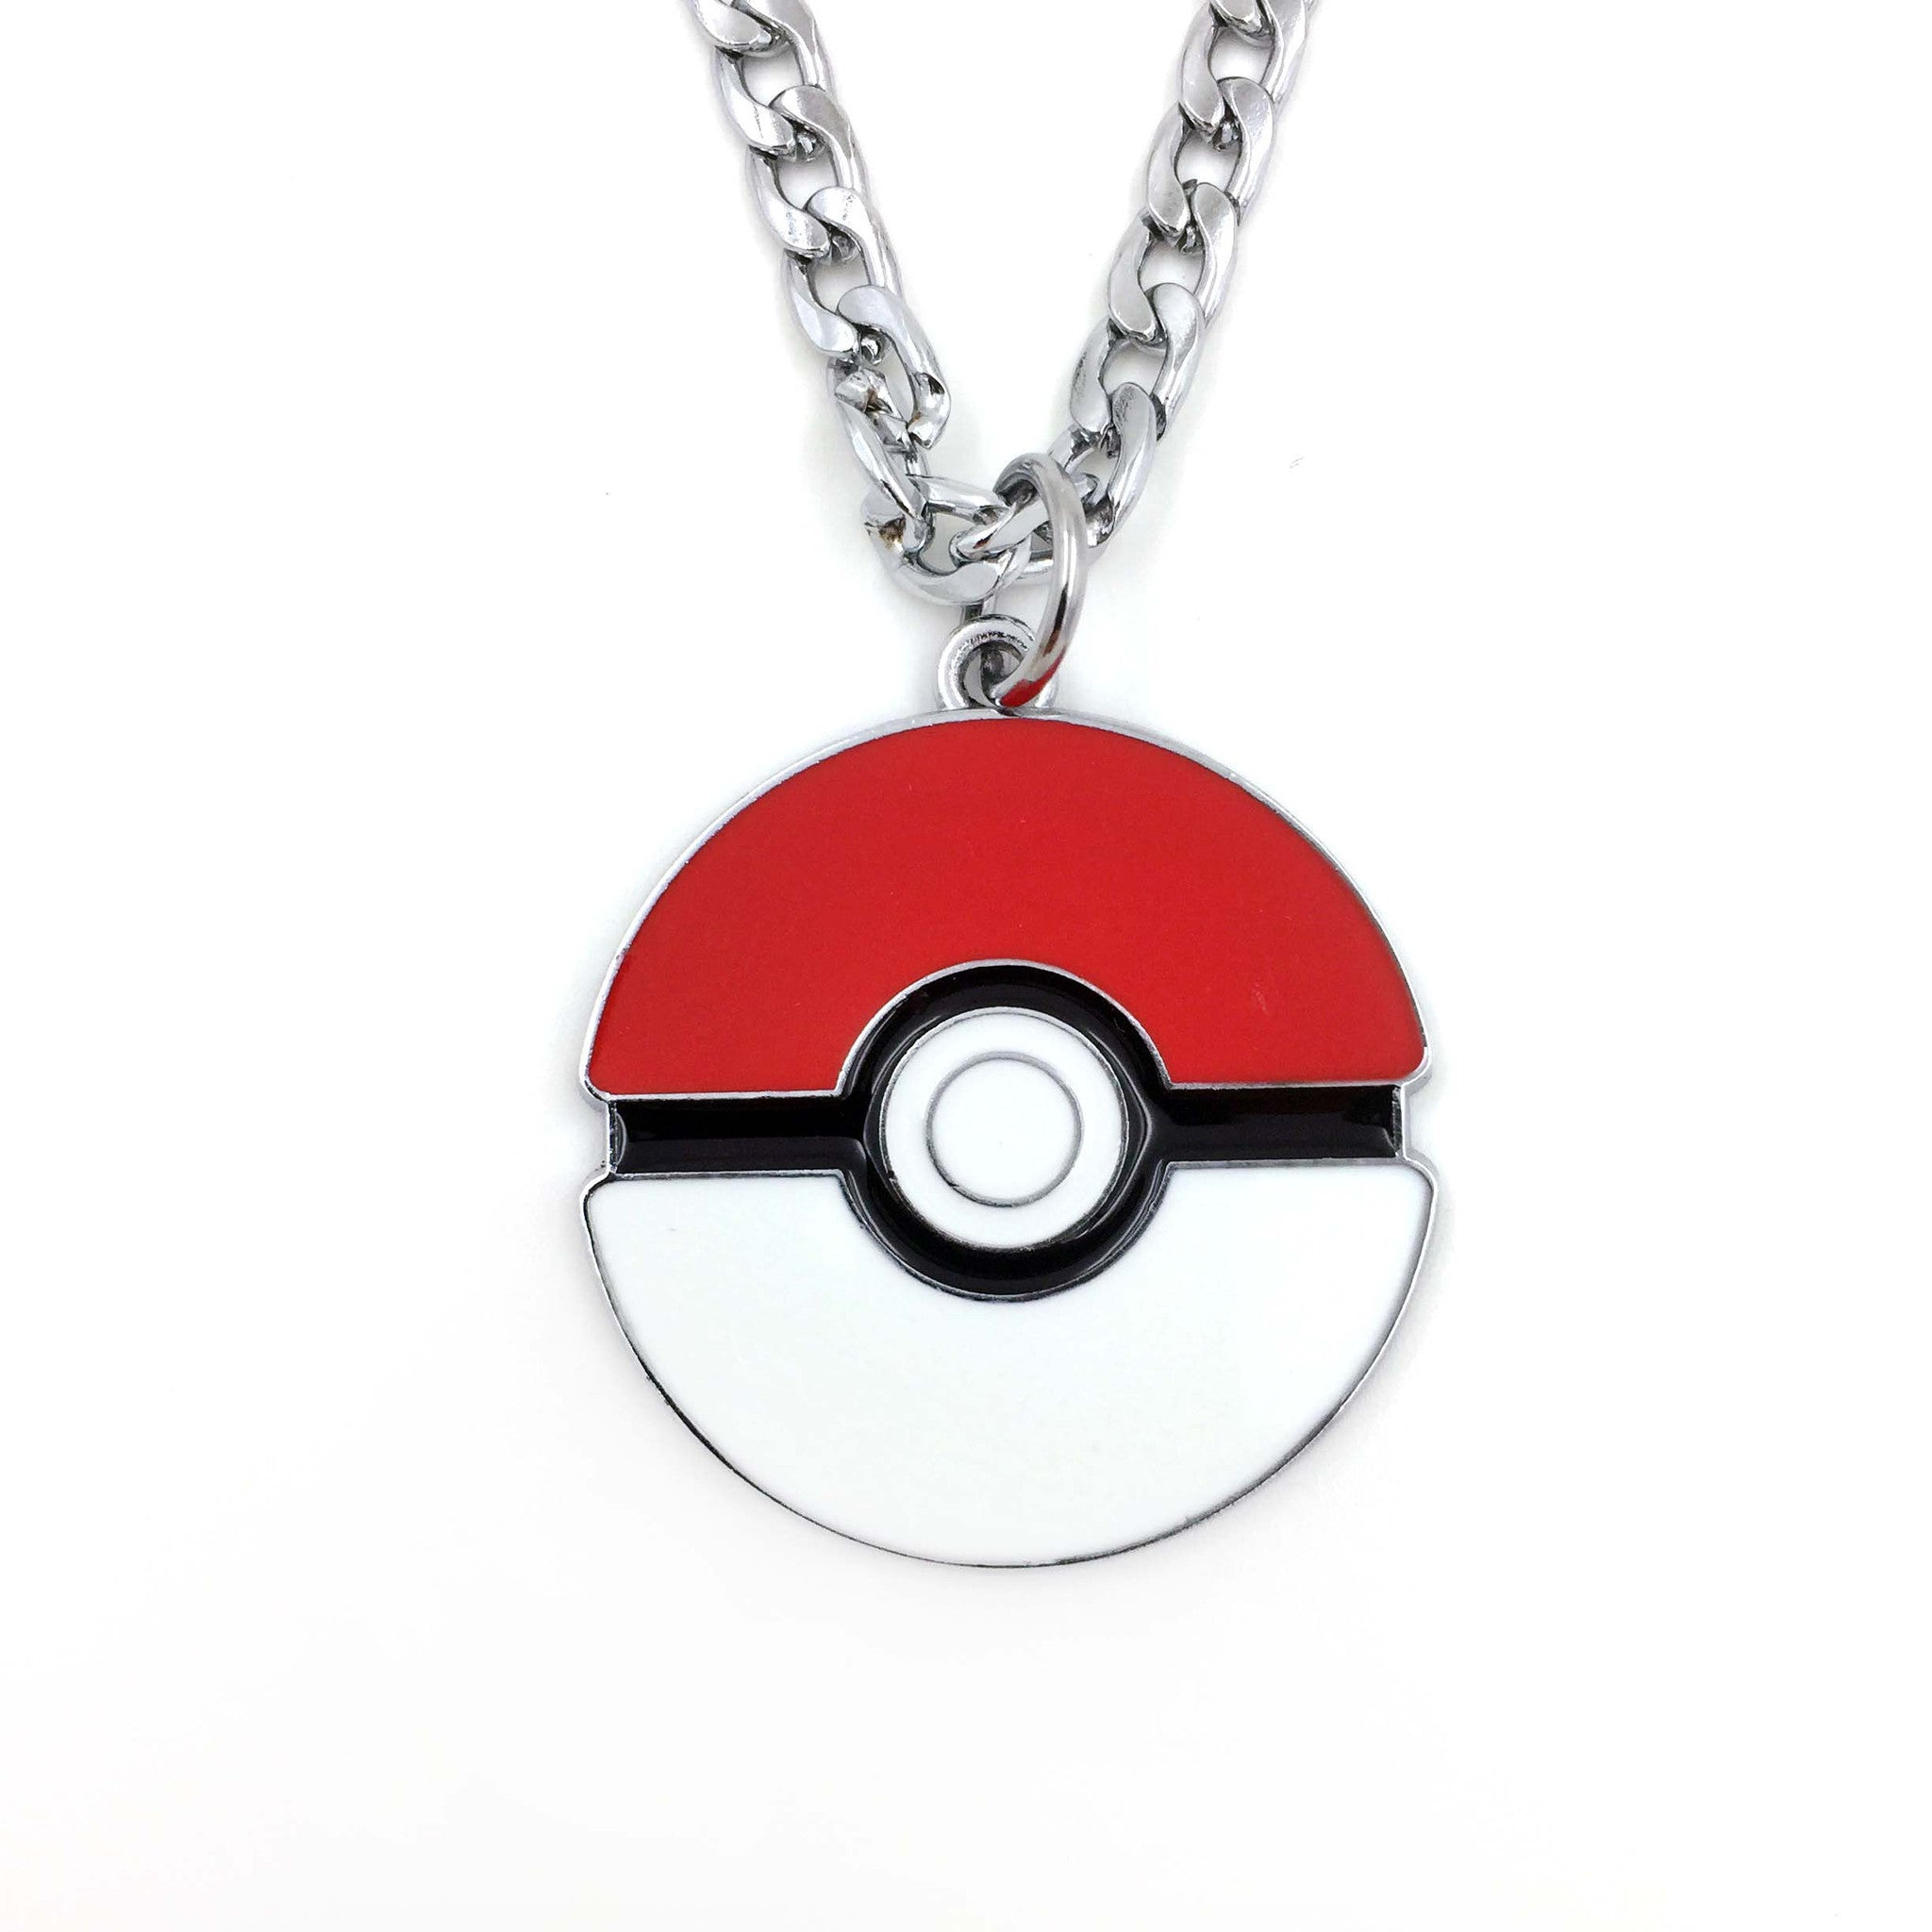 The Original Pokemon 2D Poke Ball Necklace - One Cool Gift  - 1